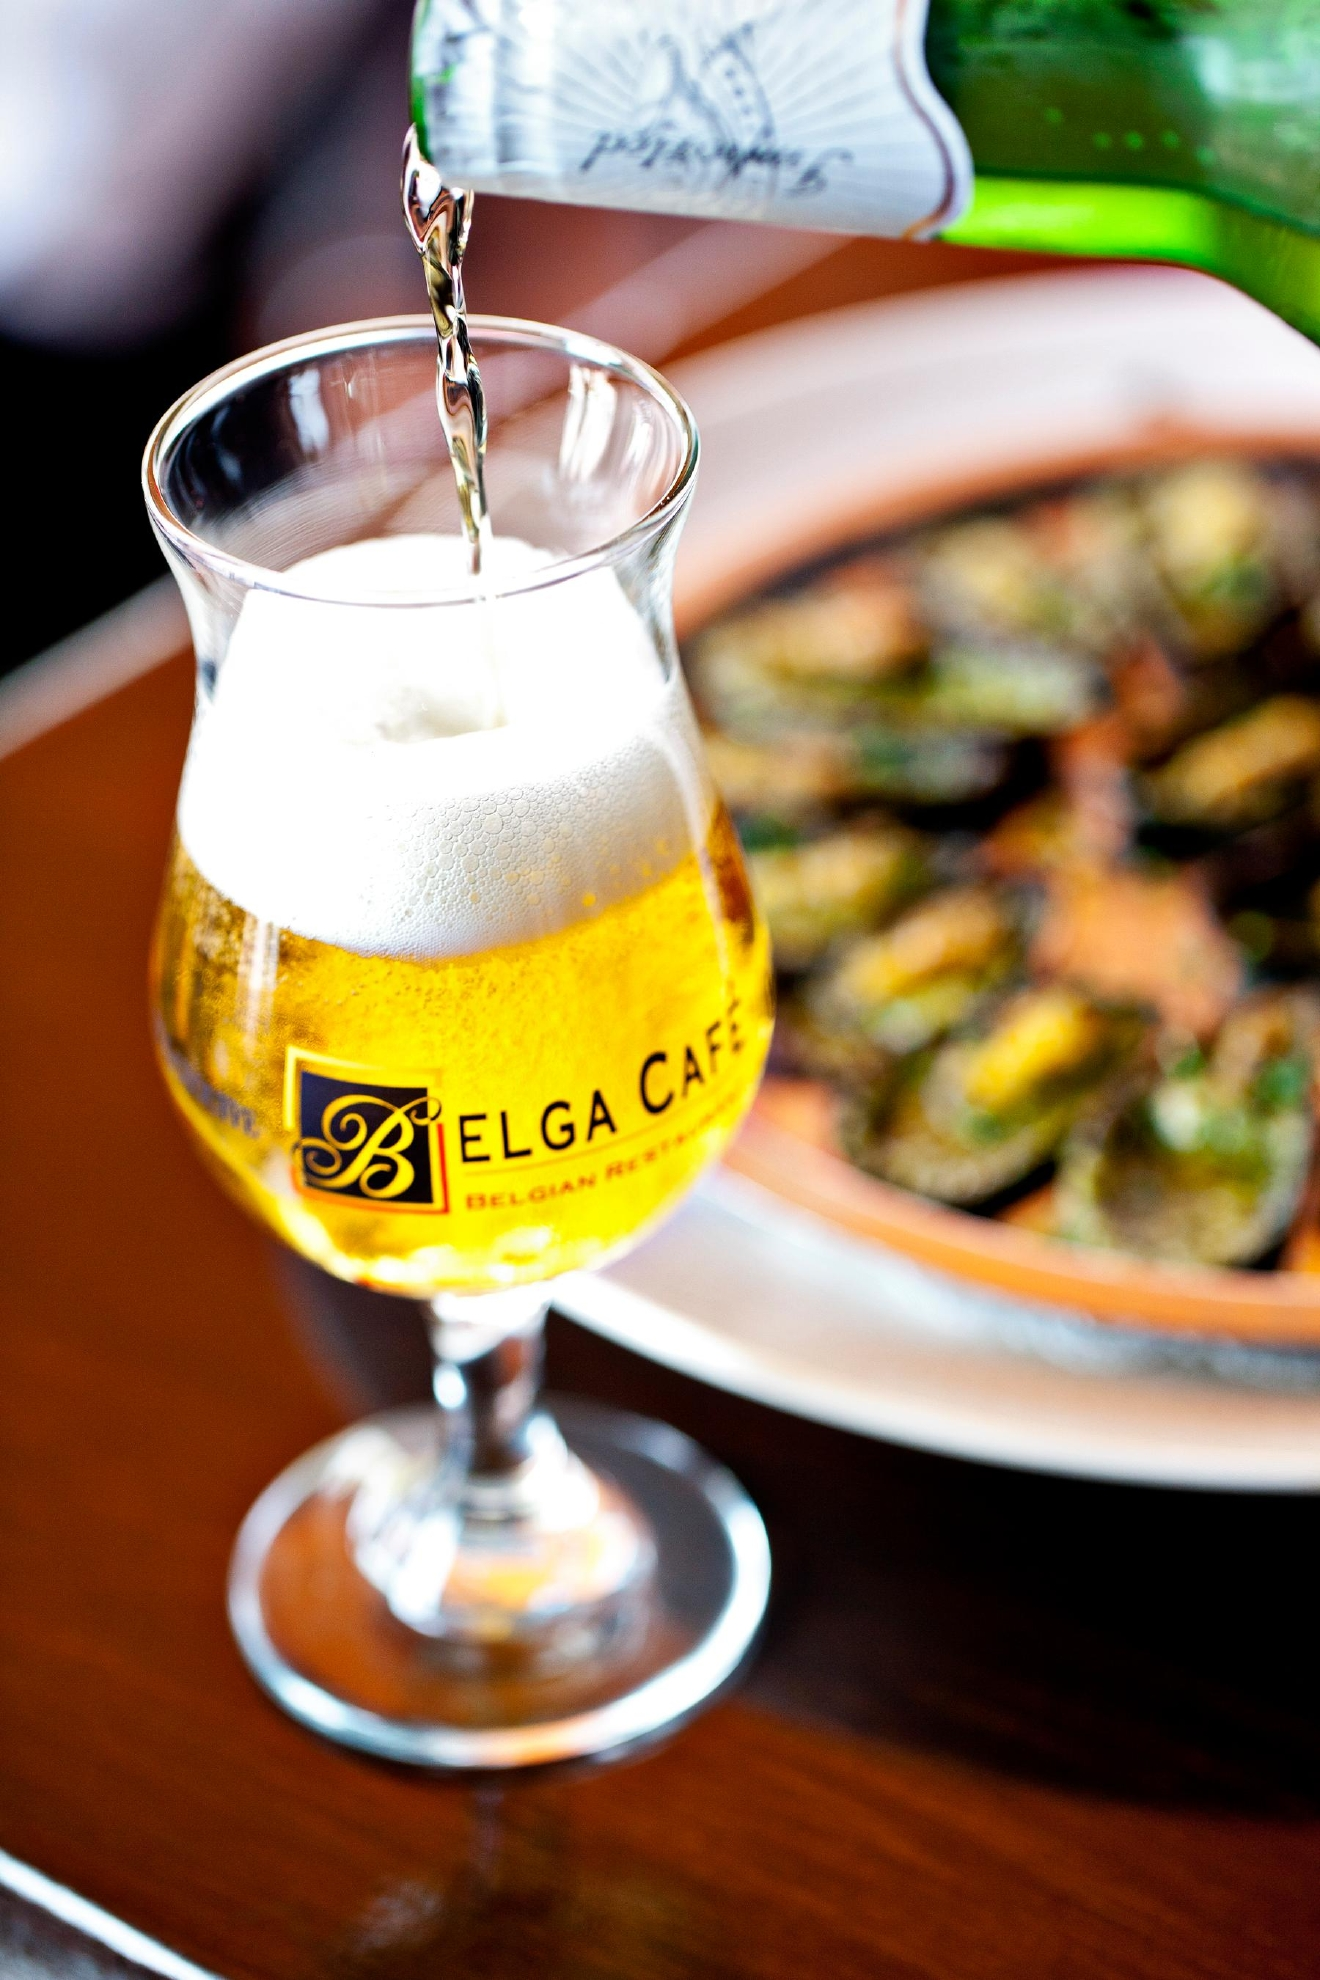 Greg Engert, of the recently opened Belgian beer den The Sovereign in Georgetown, talks myths, favorite bottles and pairing advice for Belgian beers. Three of his fav spots to try Belgians? The Sovereign (not surprisingly!), Belga Cafe and Brasserie Beck. (Image: Courtesy Belga Cafe)